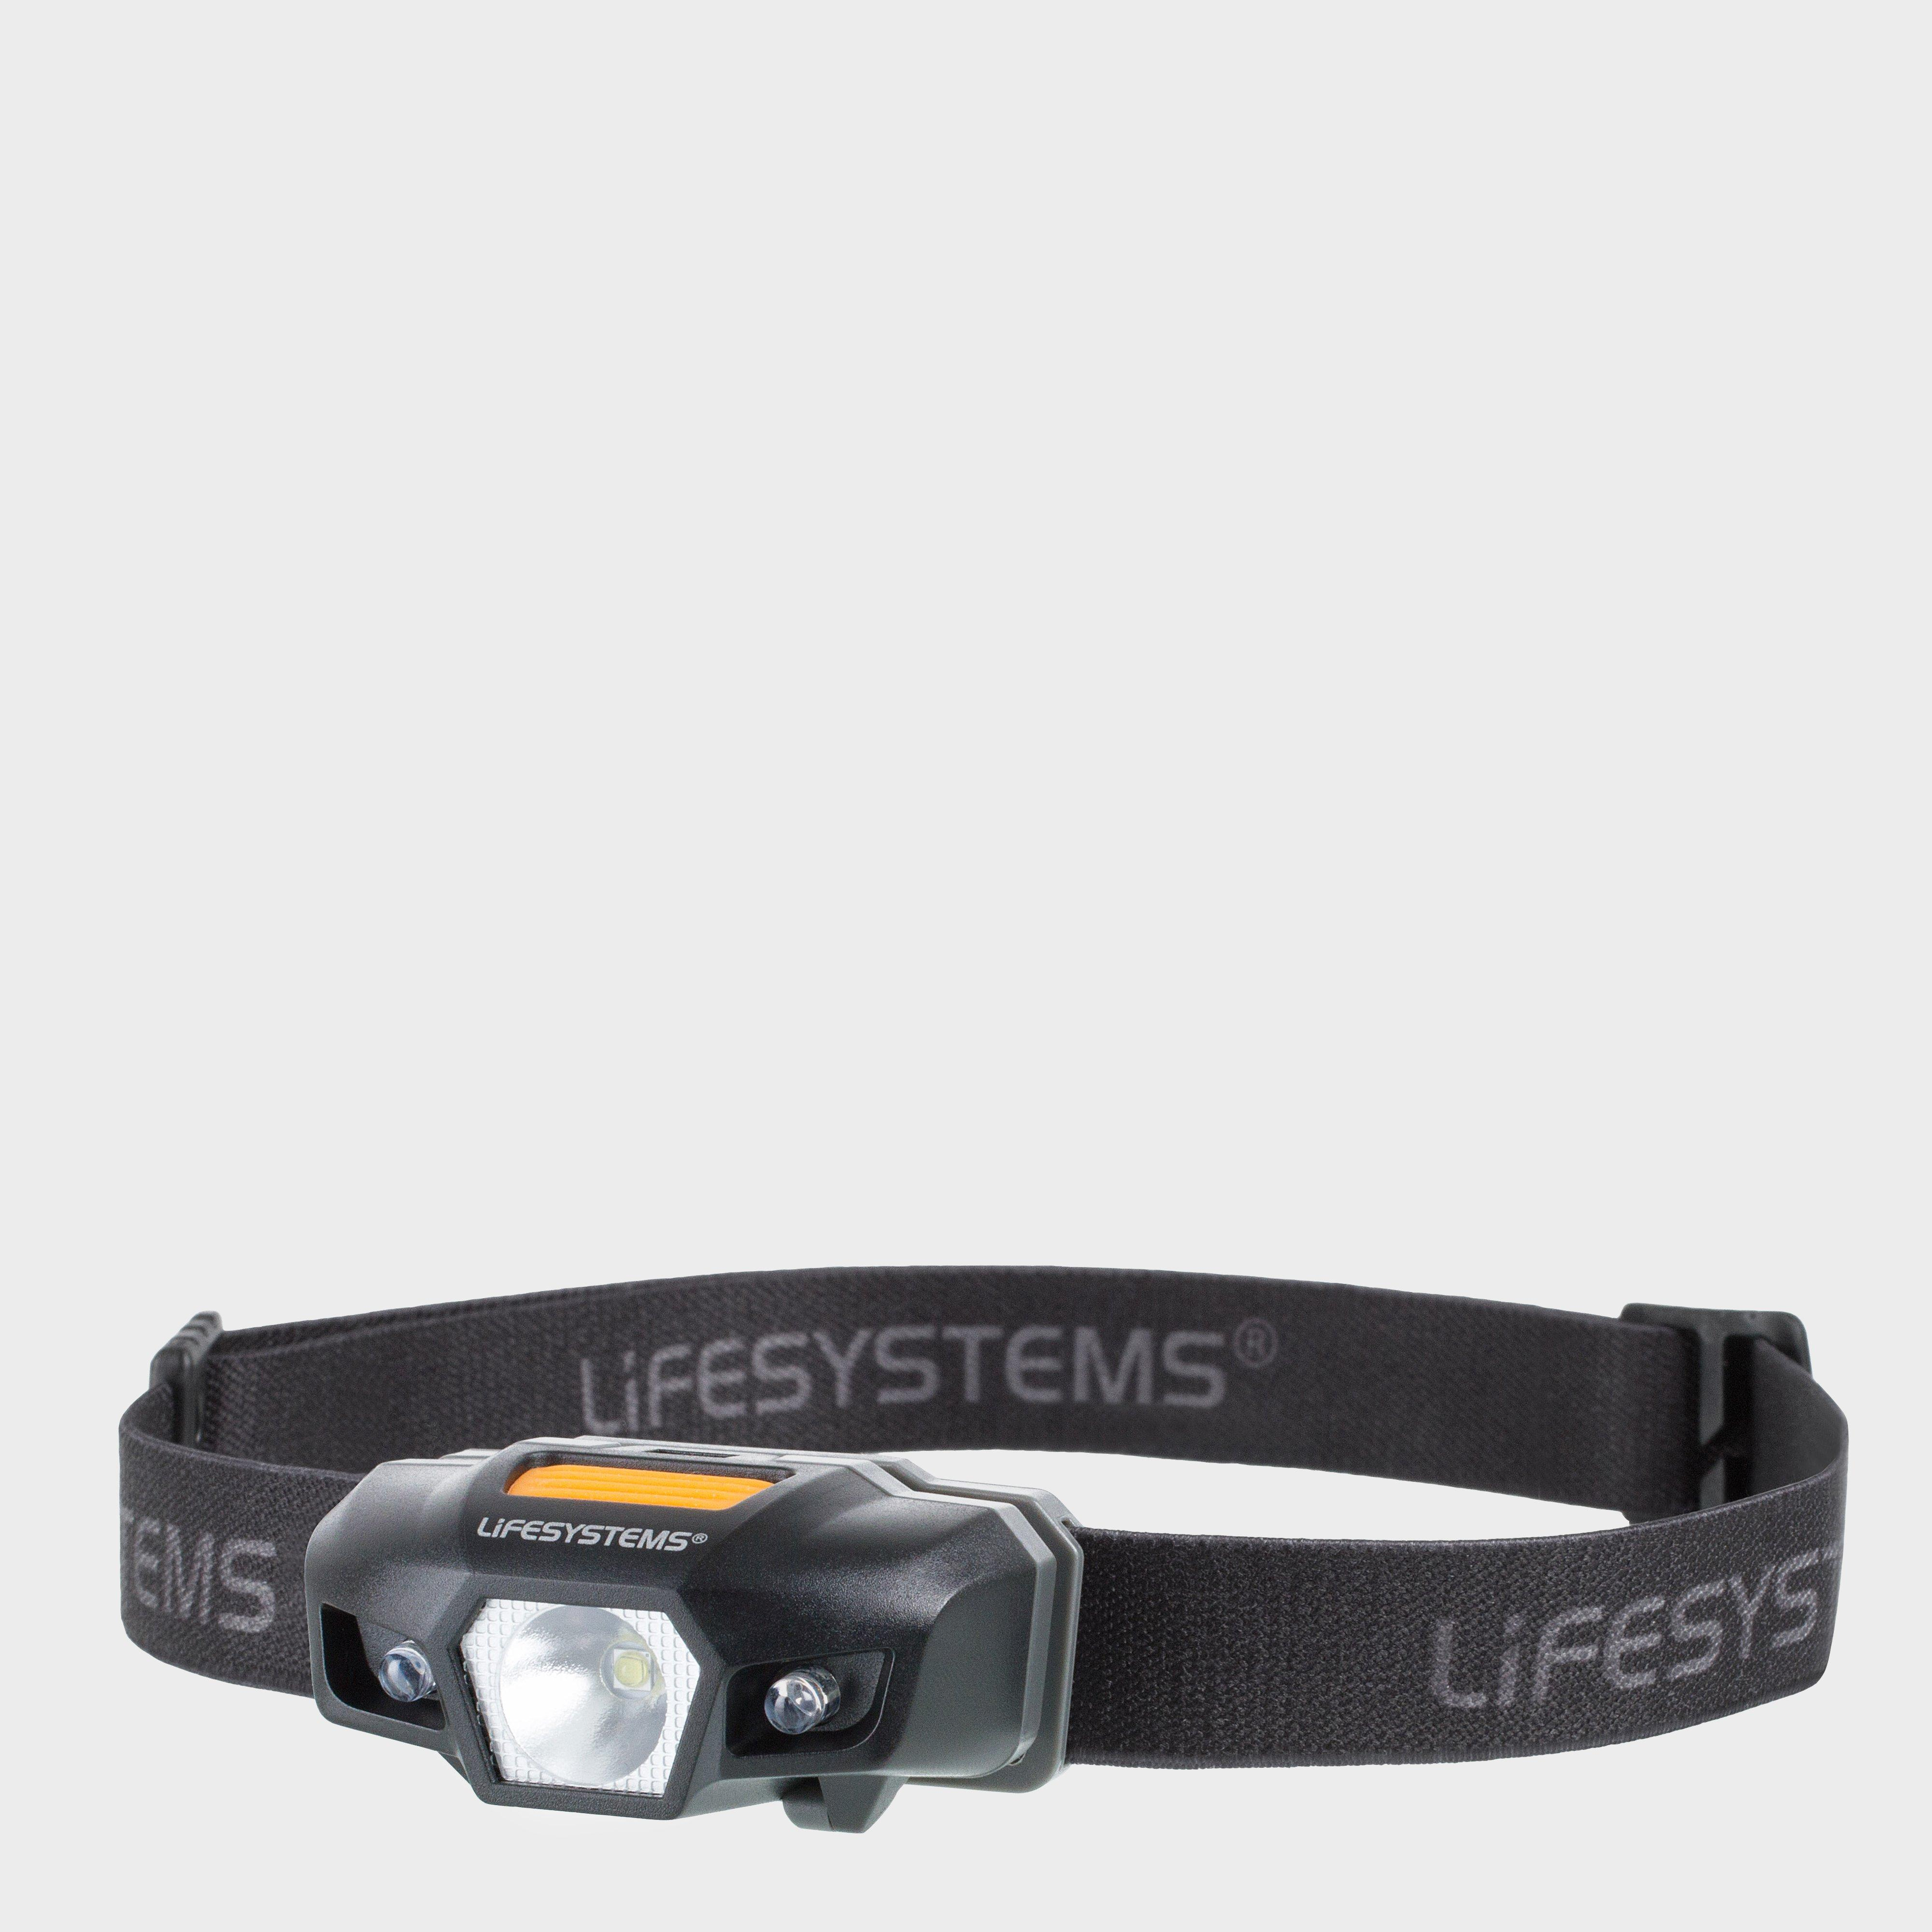 Lifesystems Lifesystems Intensity 155 LED Head Torch - N/A, N/A